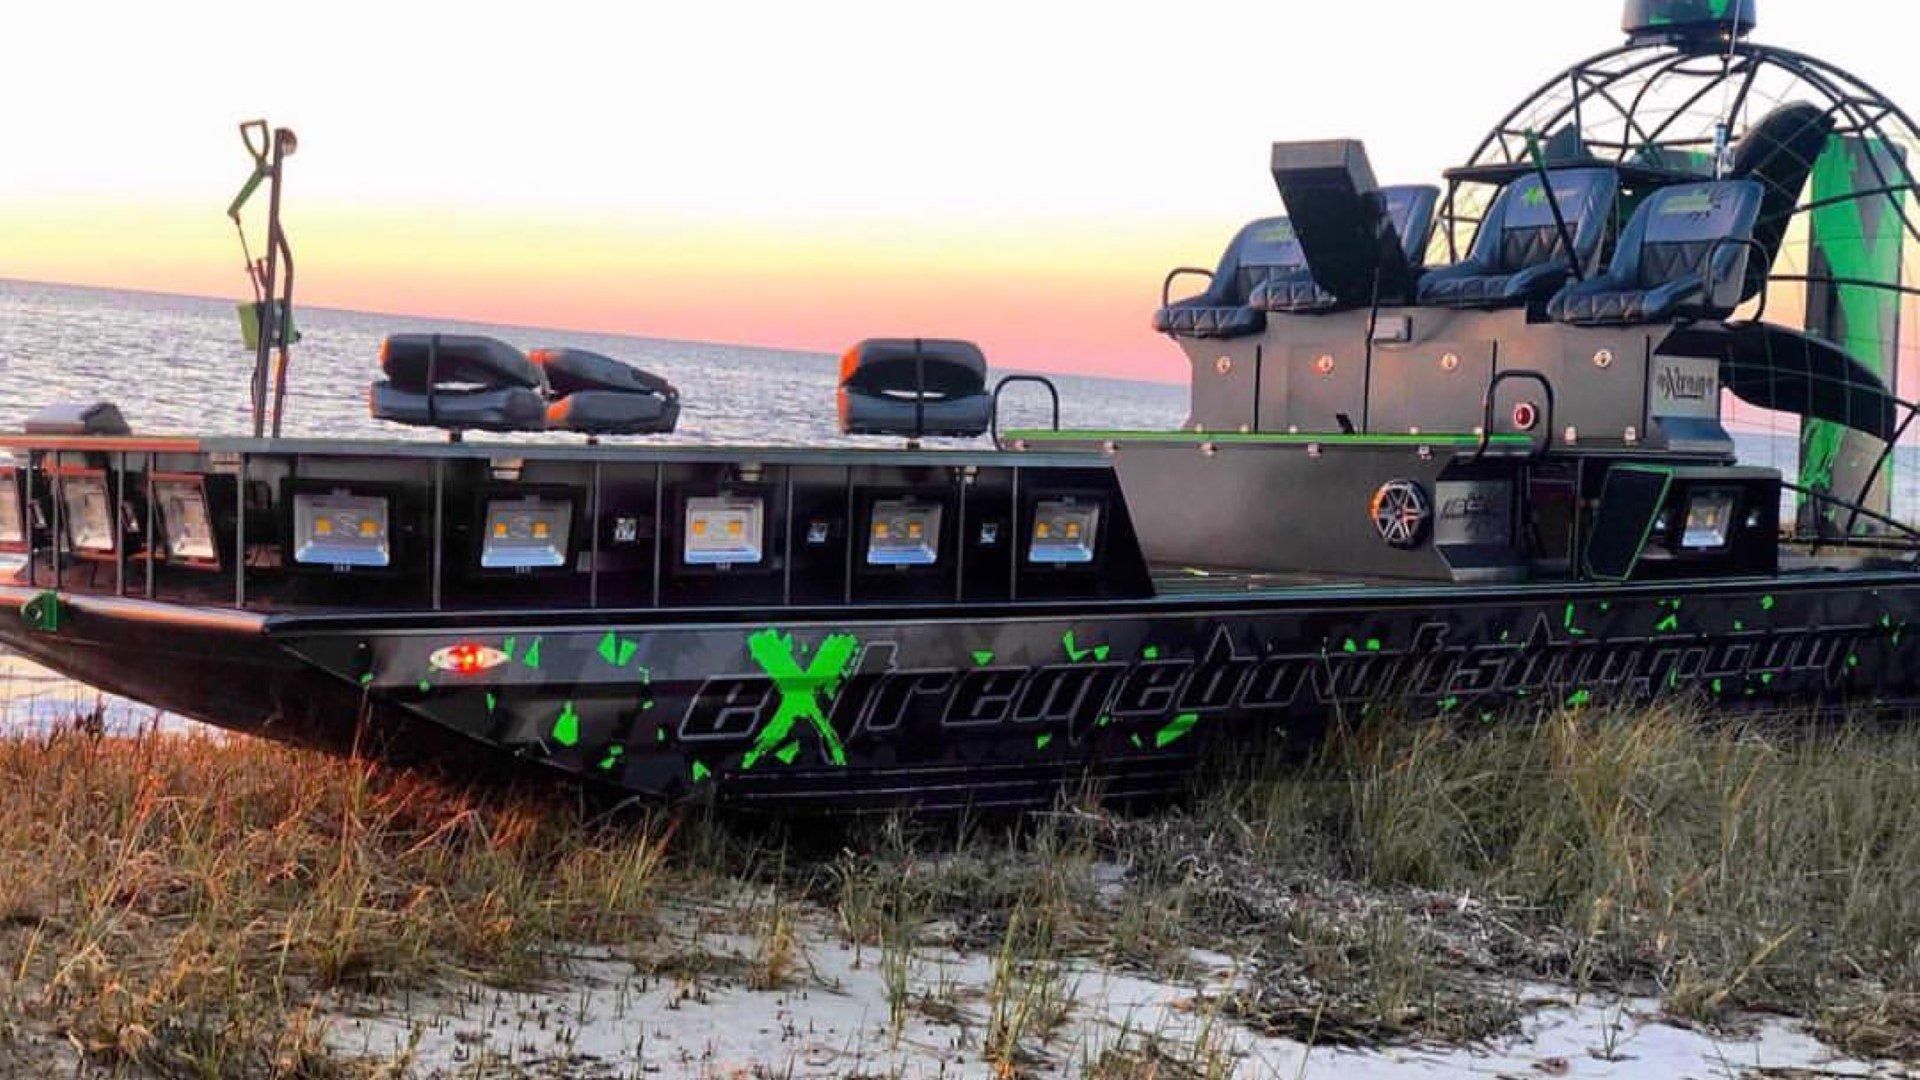 23×9 900hp Custom Built Pb Airboat!